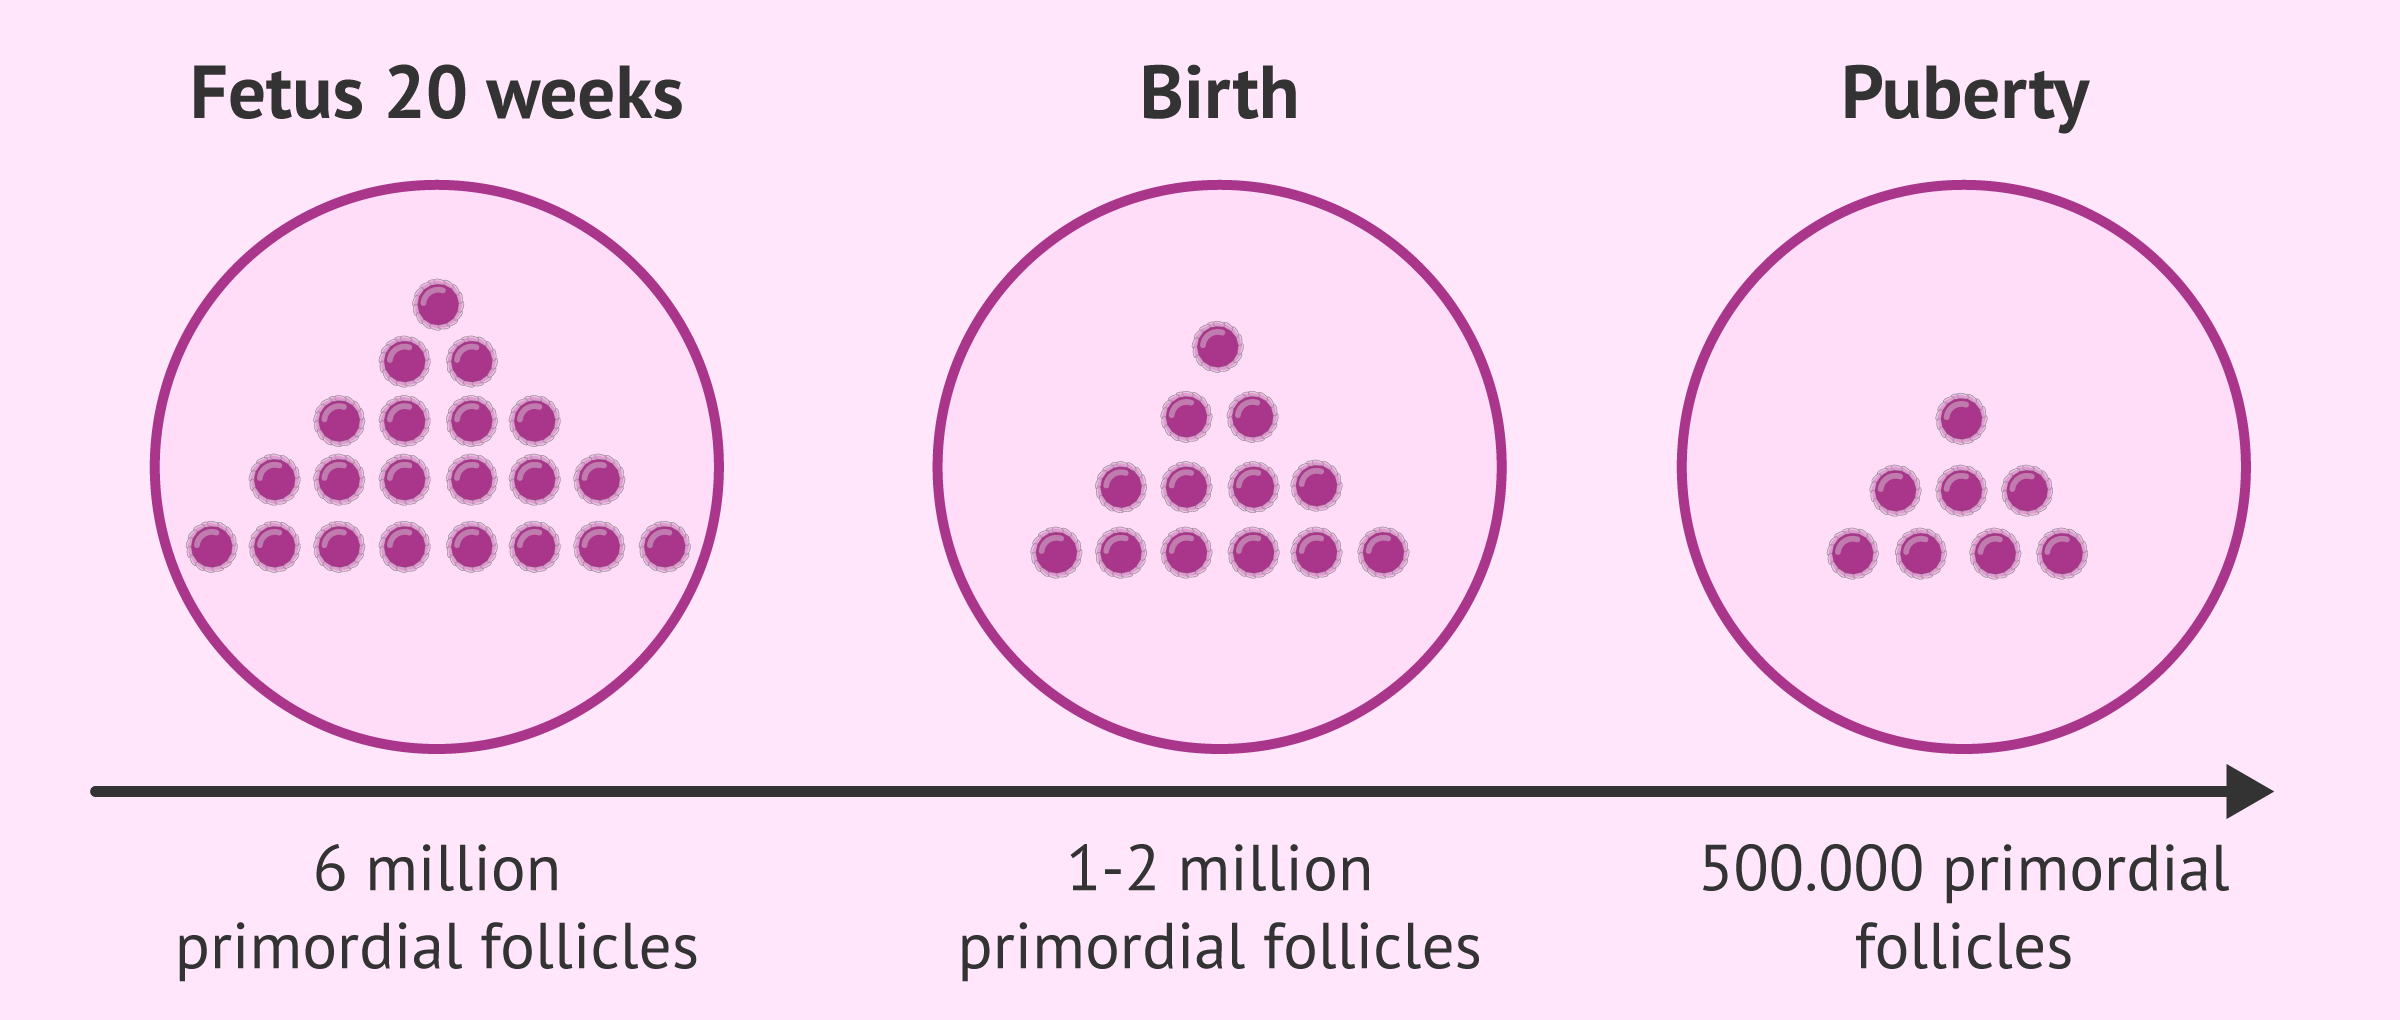 Number of follicles in the female before birth to puberty